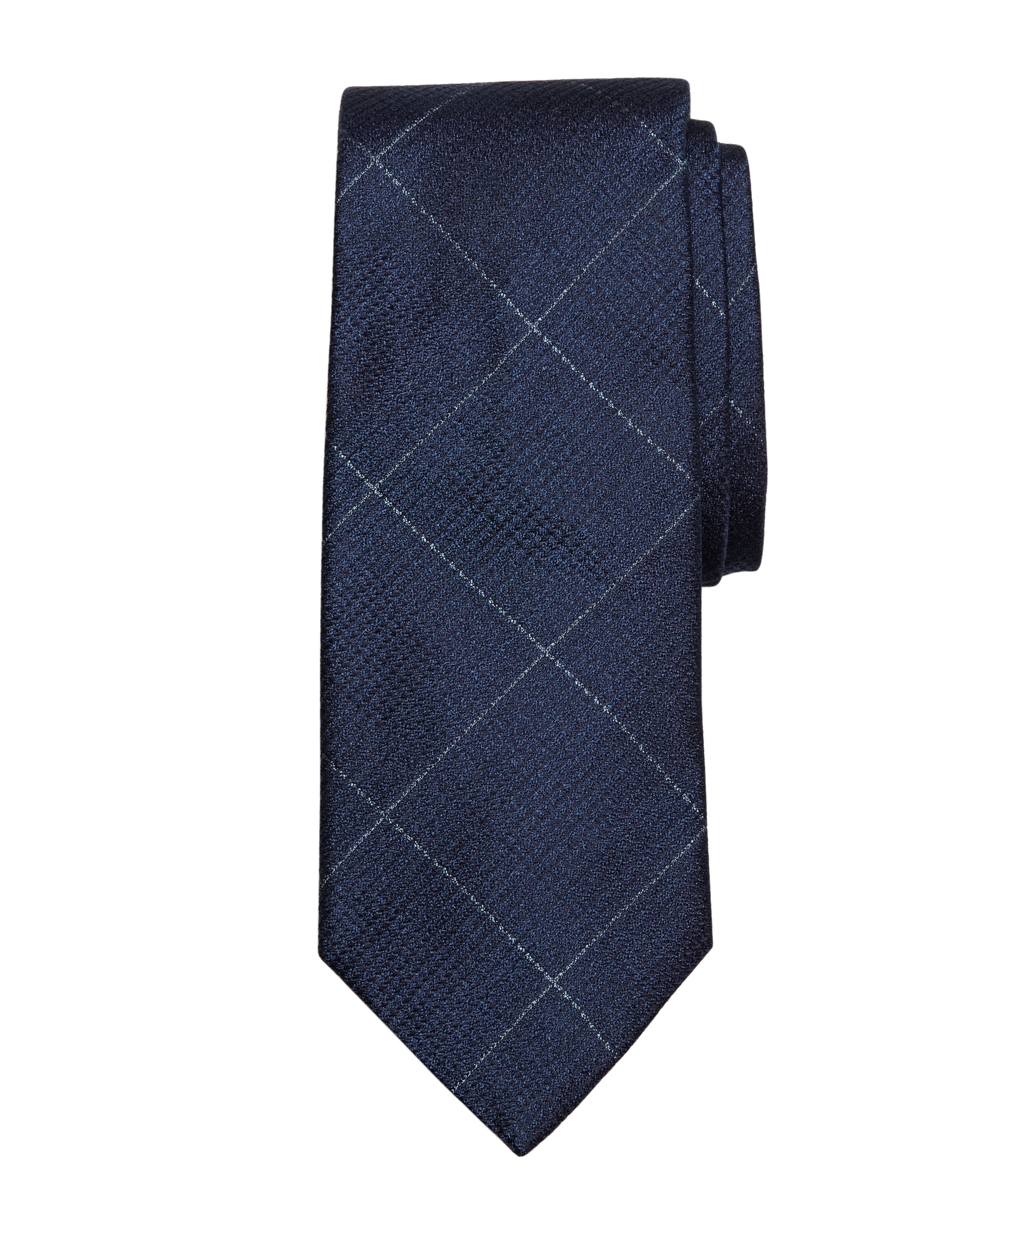 brothers glen plaid with deco tie in blue for